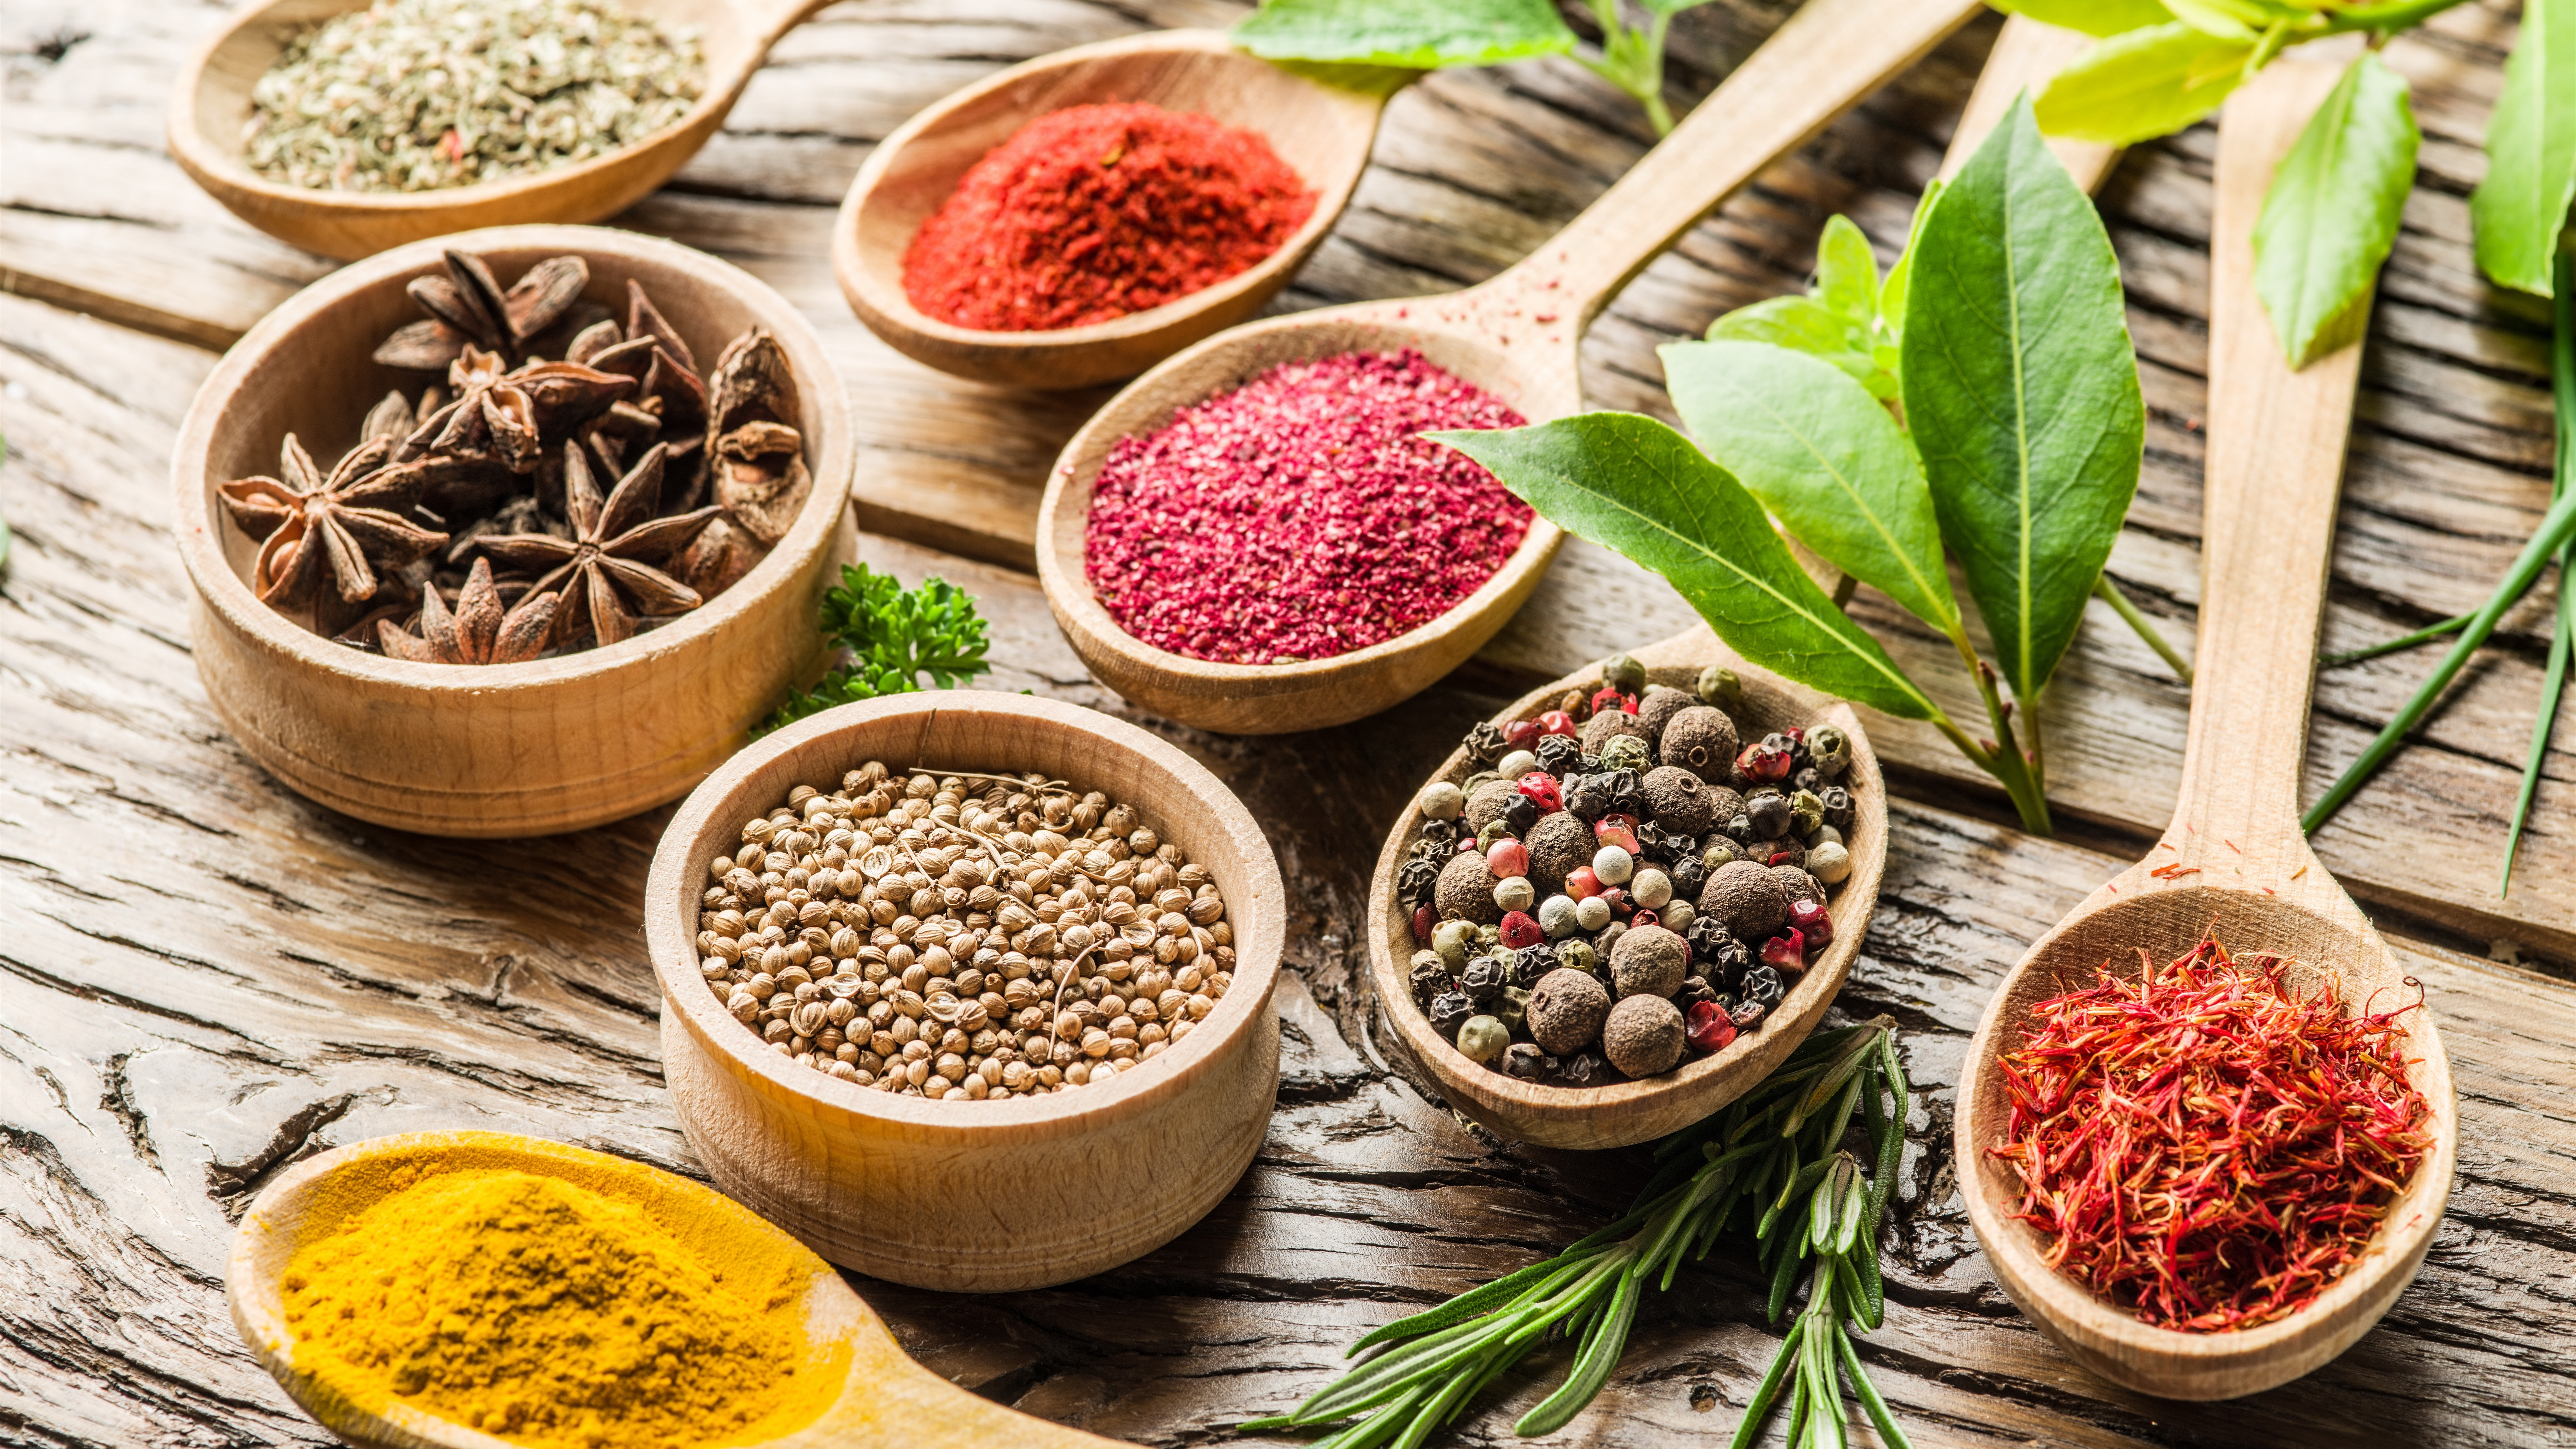 Spices-pepper-anise-star-laurel-turmeric